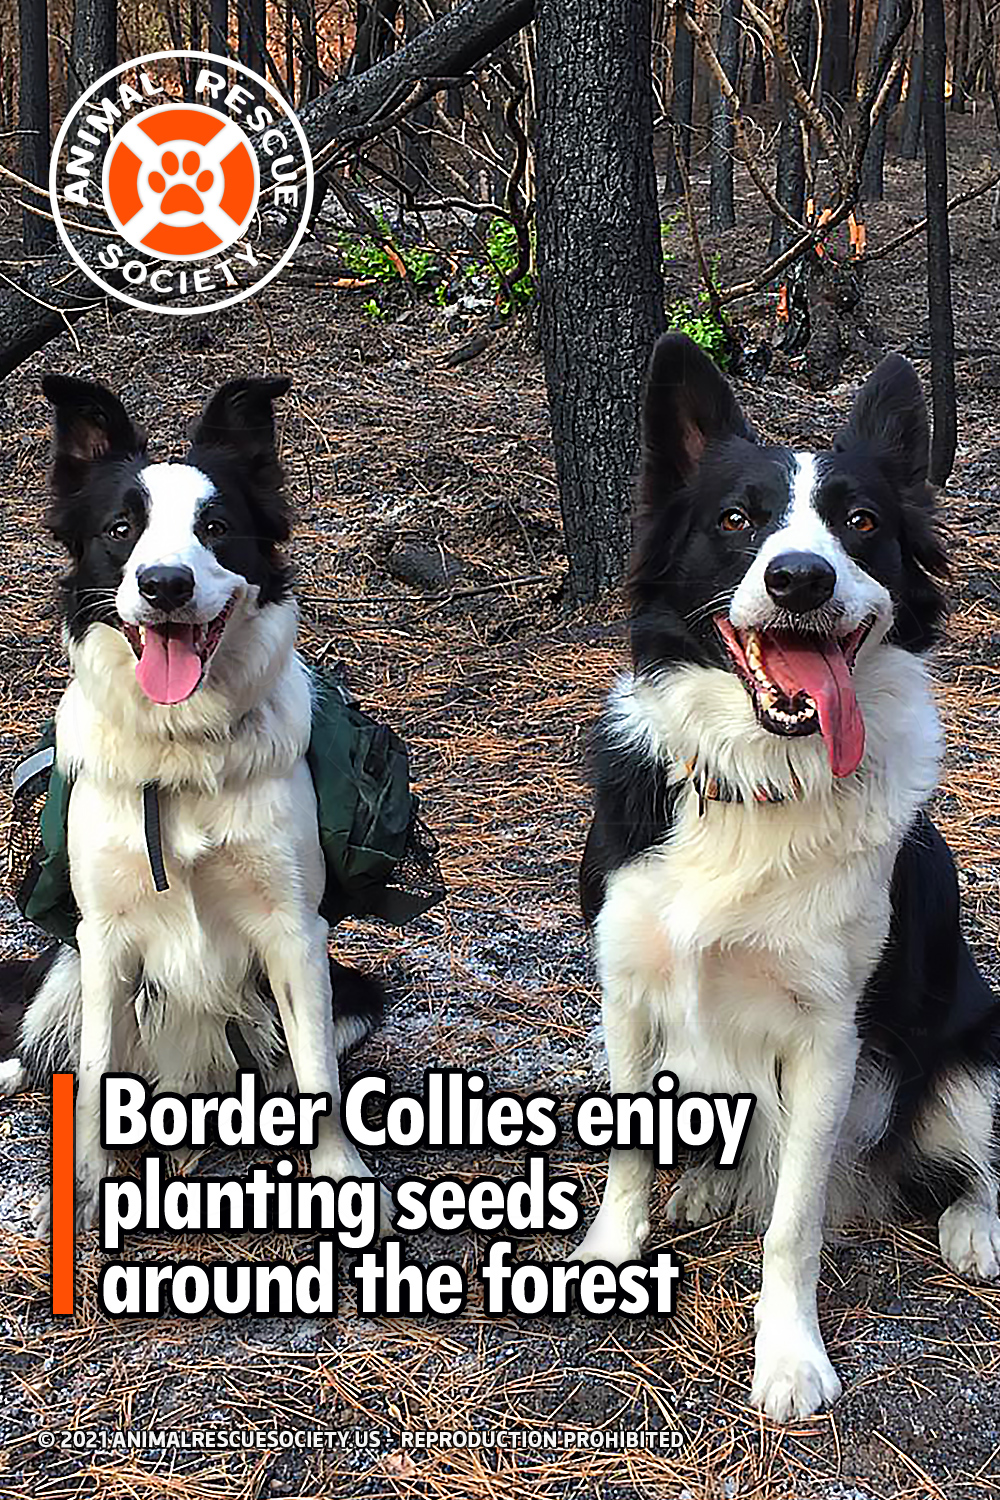 Border Collies enjoy planting seeds around the forest